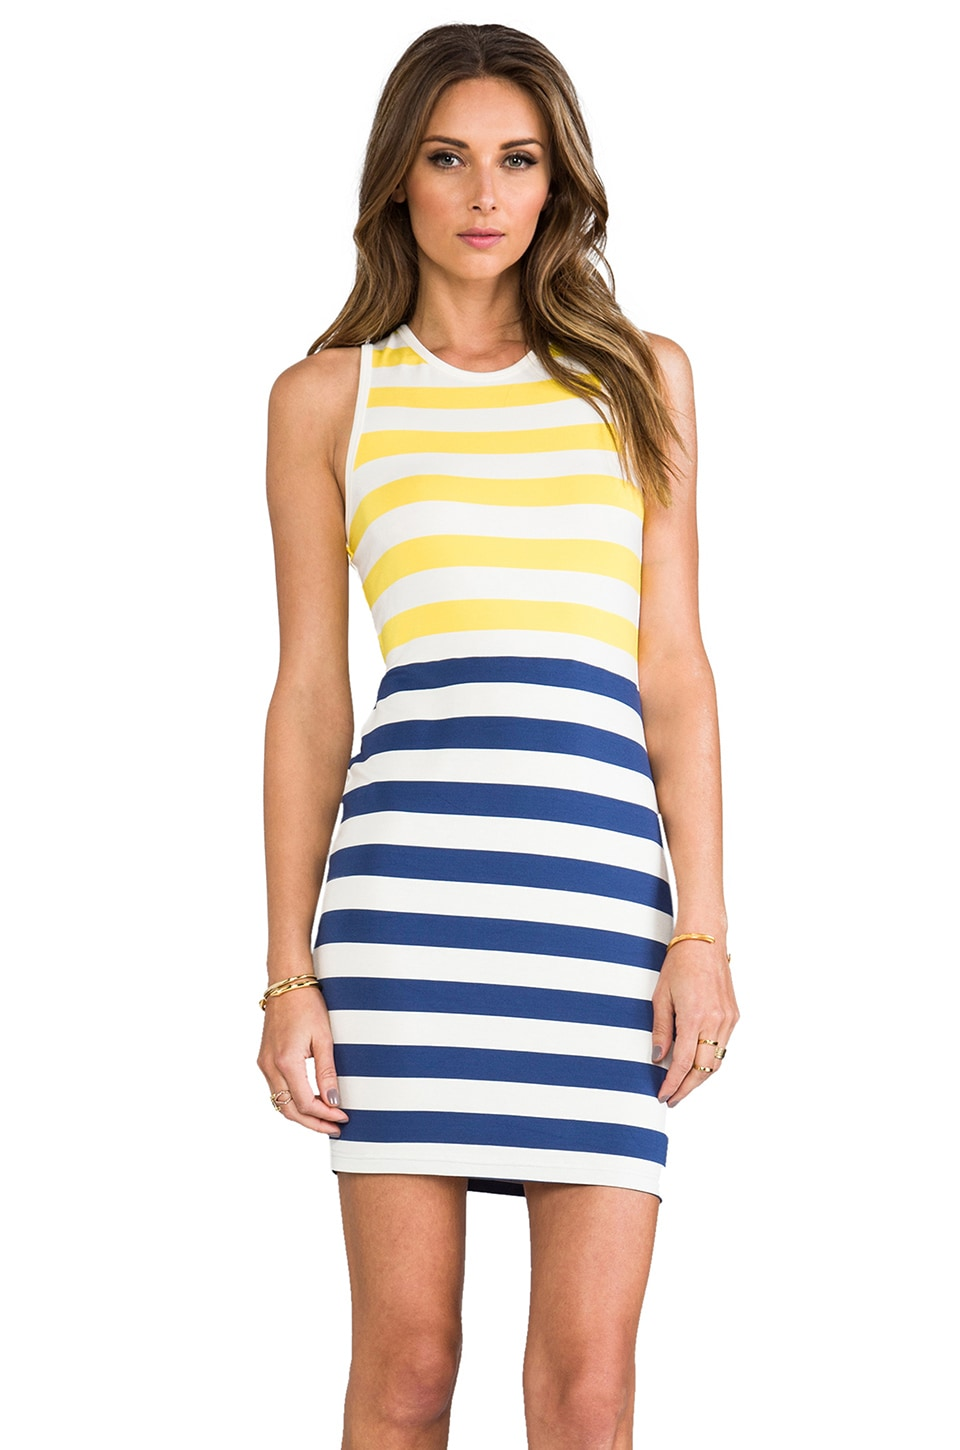 Dolce Vita Shondra Dress in Multi Stripe